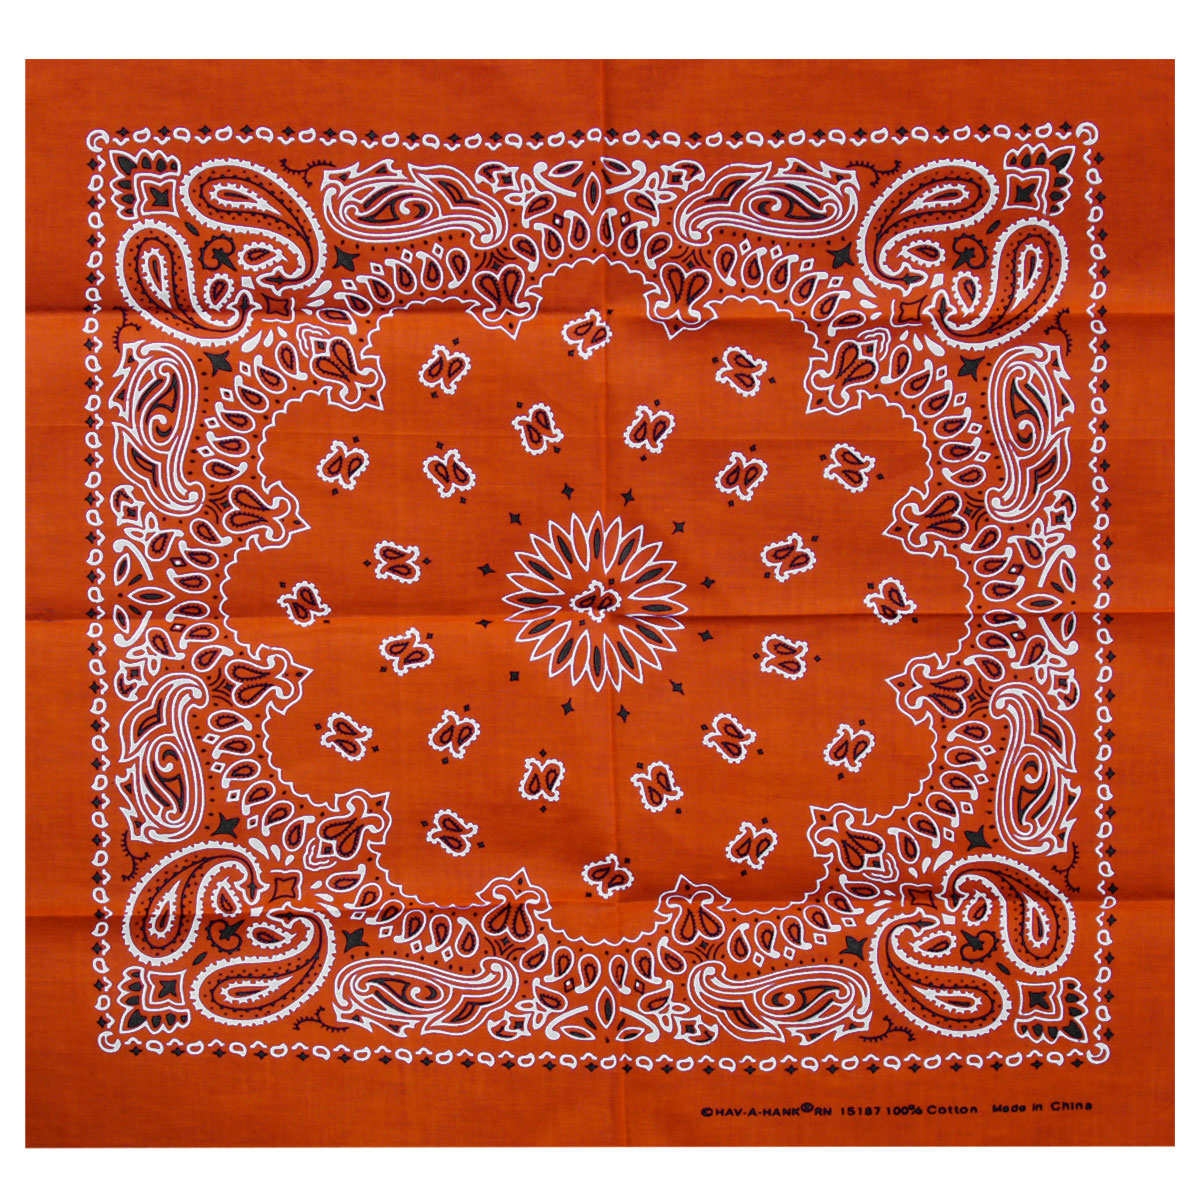 Hot Leathers Classic Orange Paisley Bandana